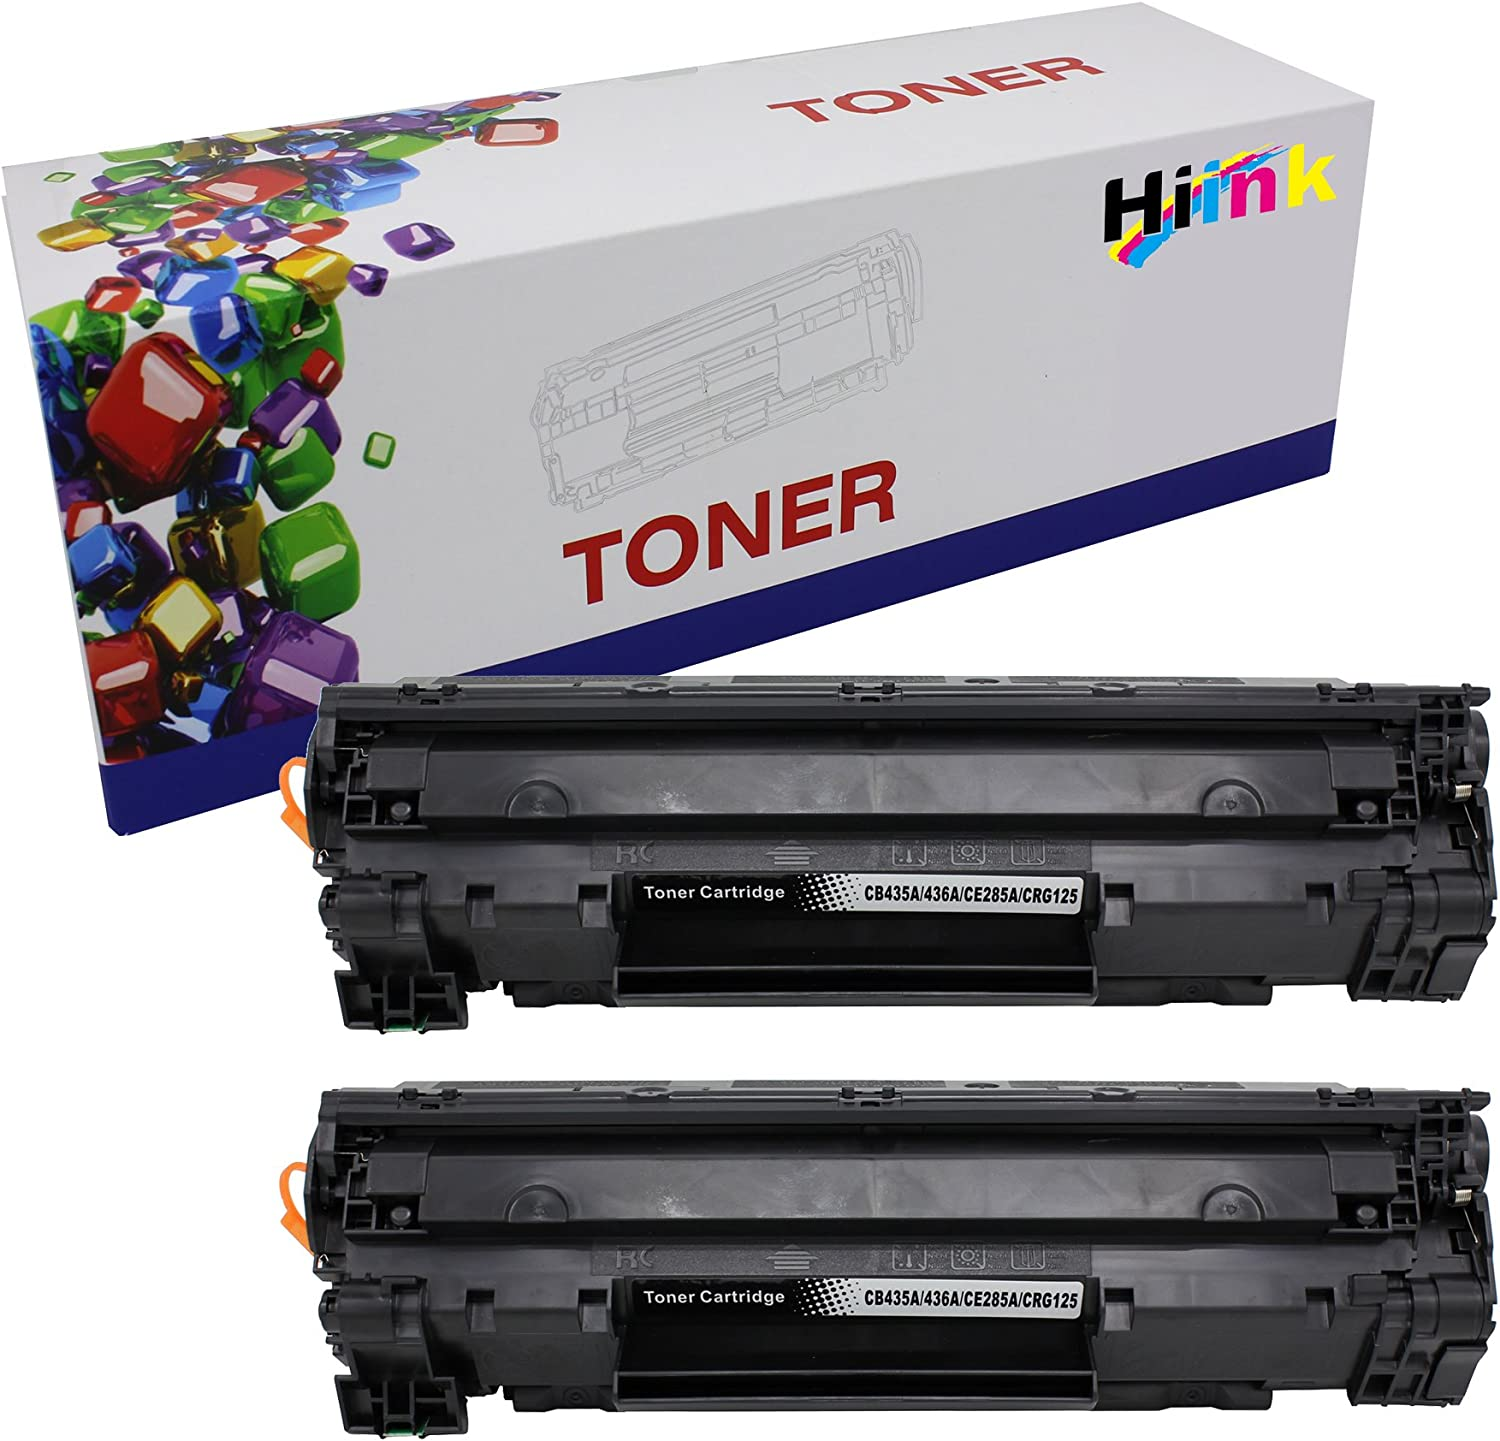 Hi Ink 2 Pack CE285A 85A Toner Cartridge-Black for for Laserjet Pro M1132, M1212nf, M1217nfw and P1102w